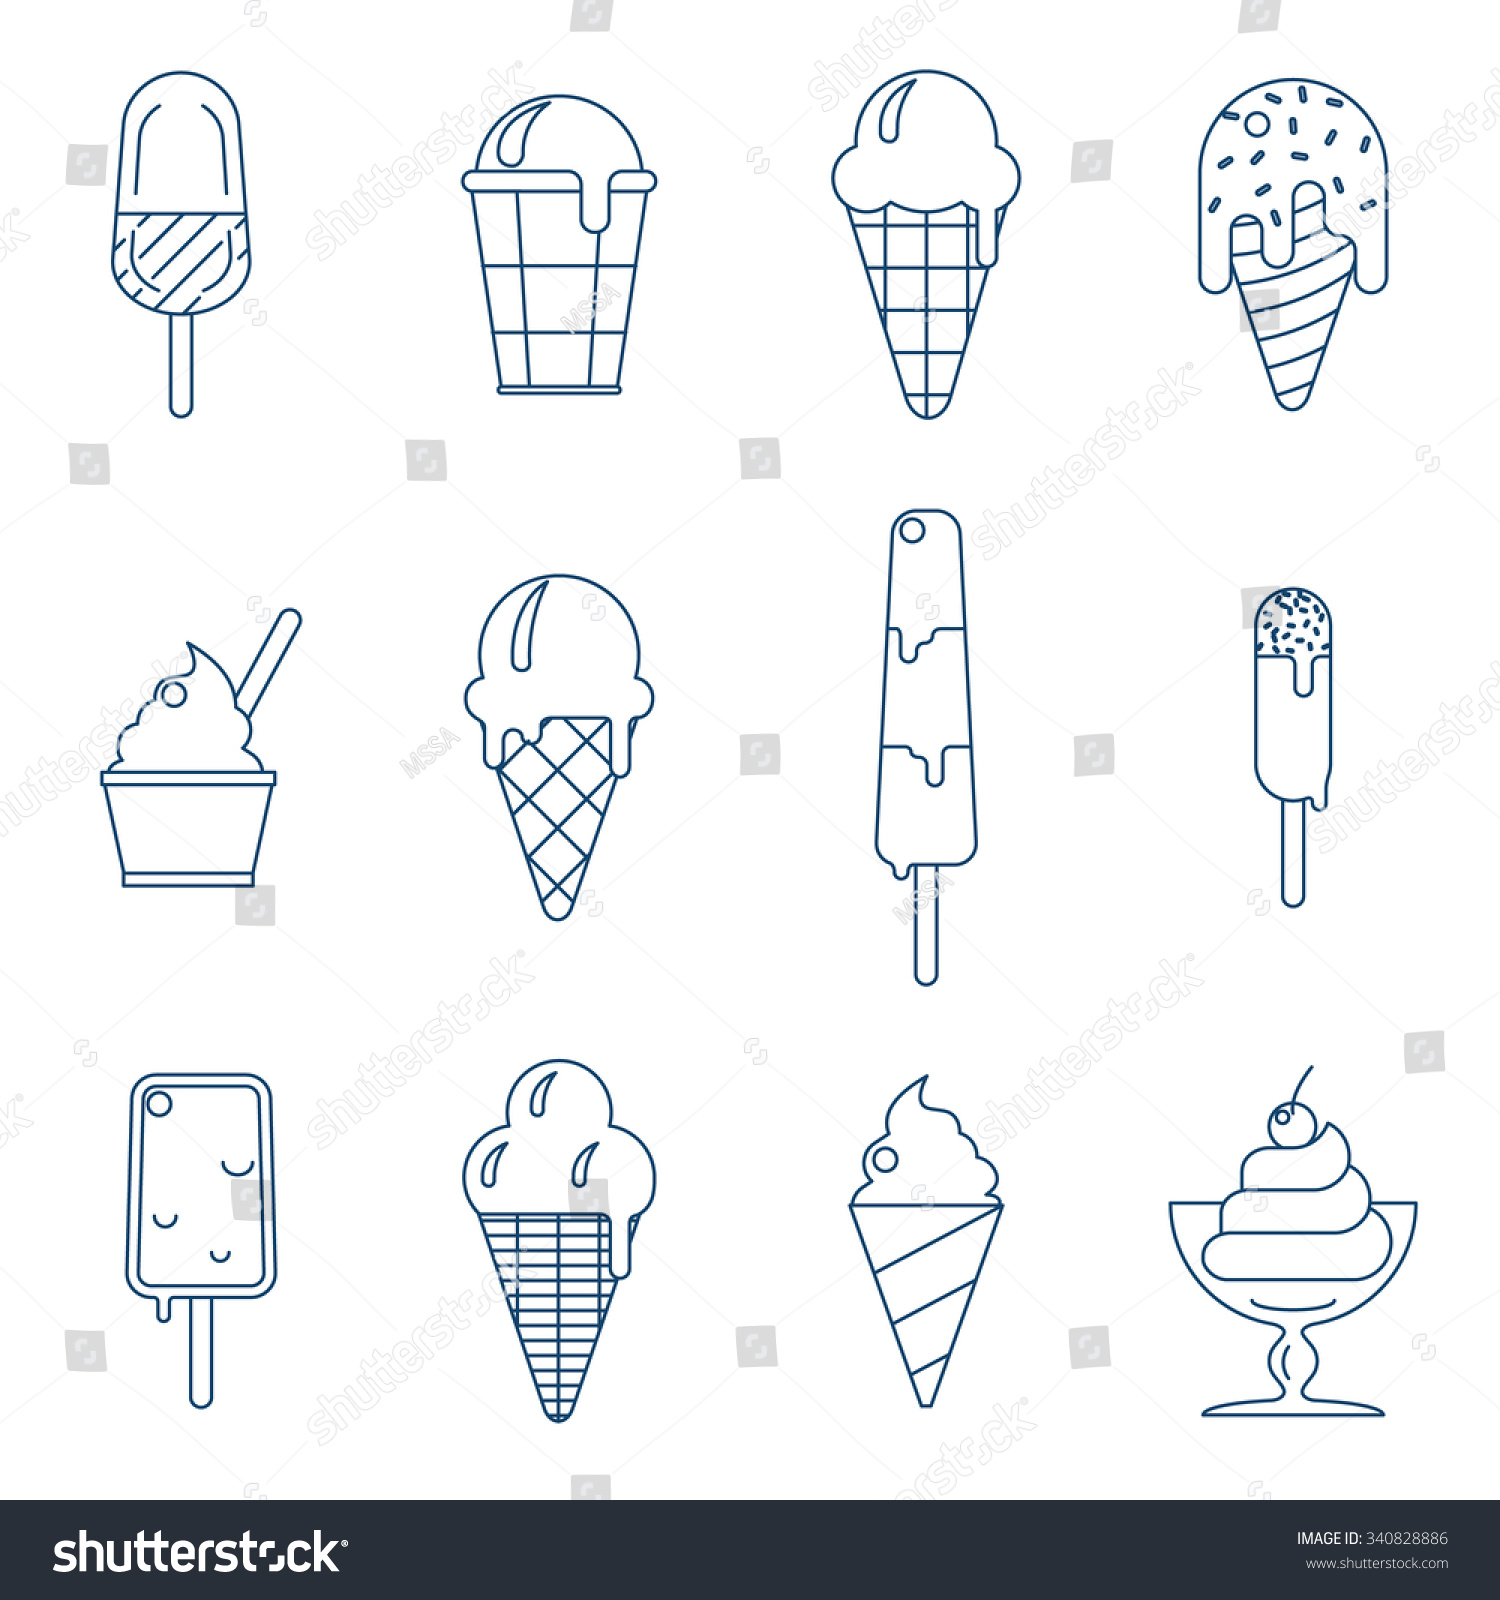 Line Art Ice Cream : Line art icecream icons set dessert food sweet and cold